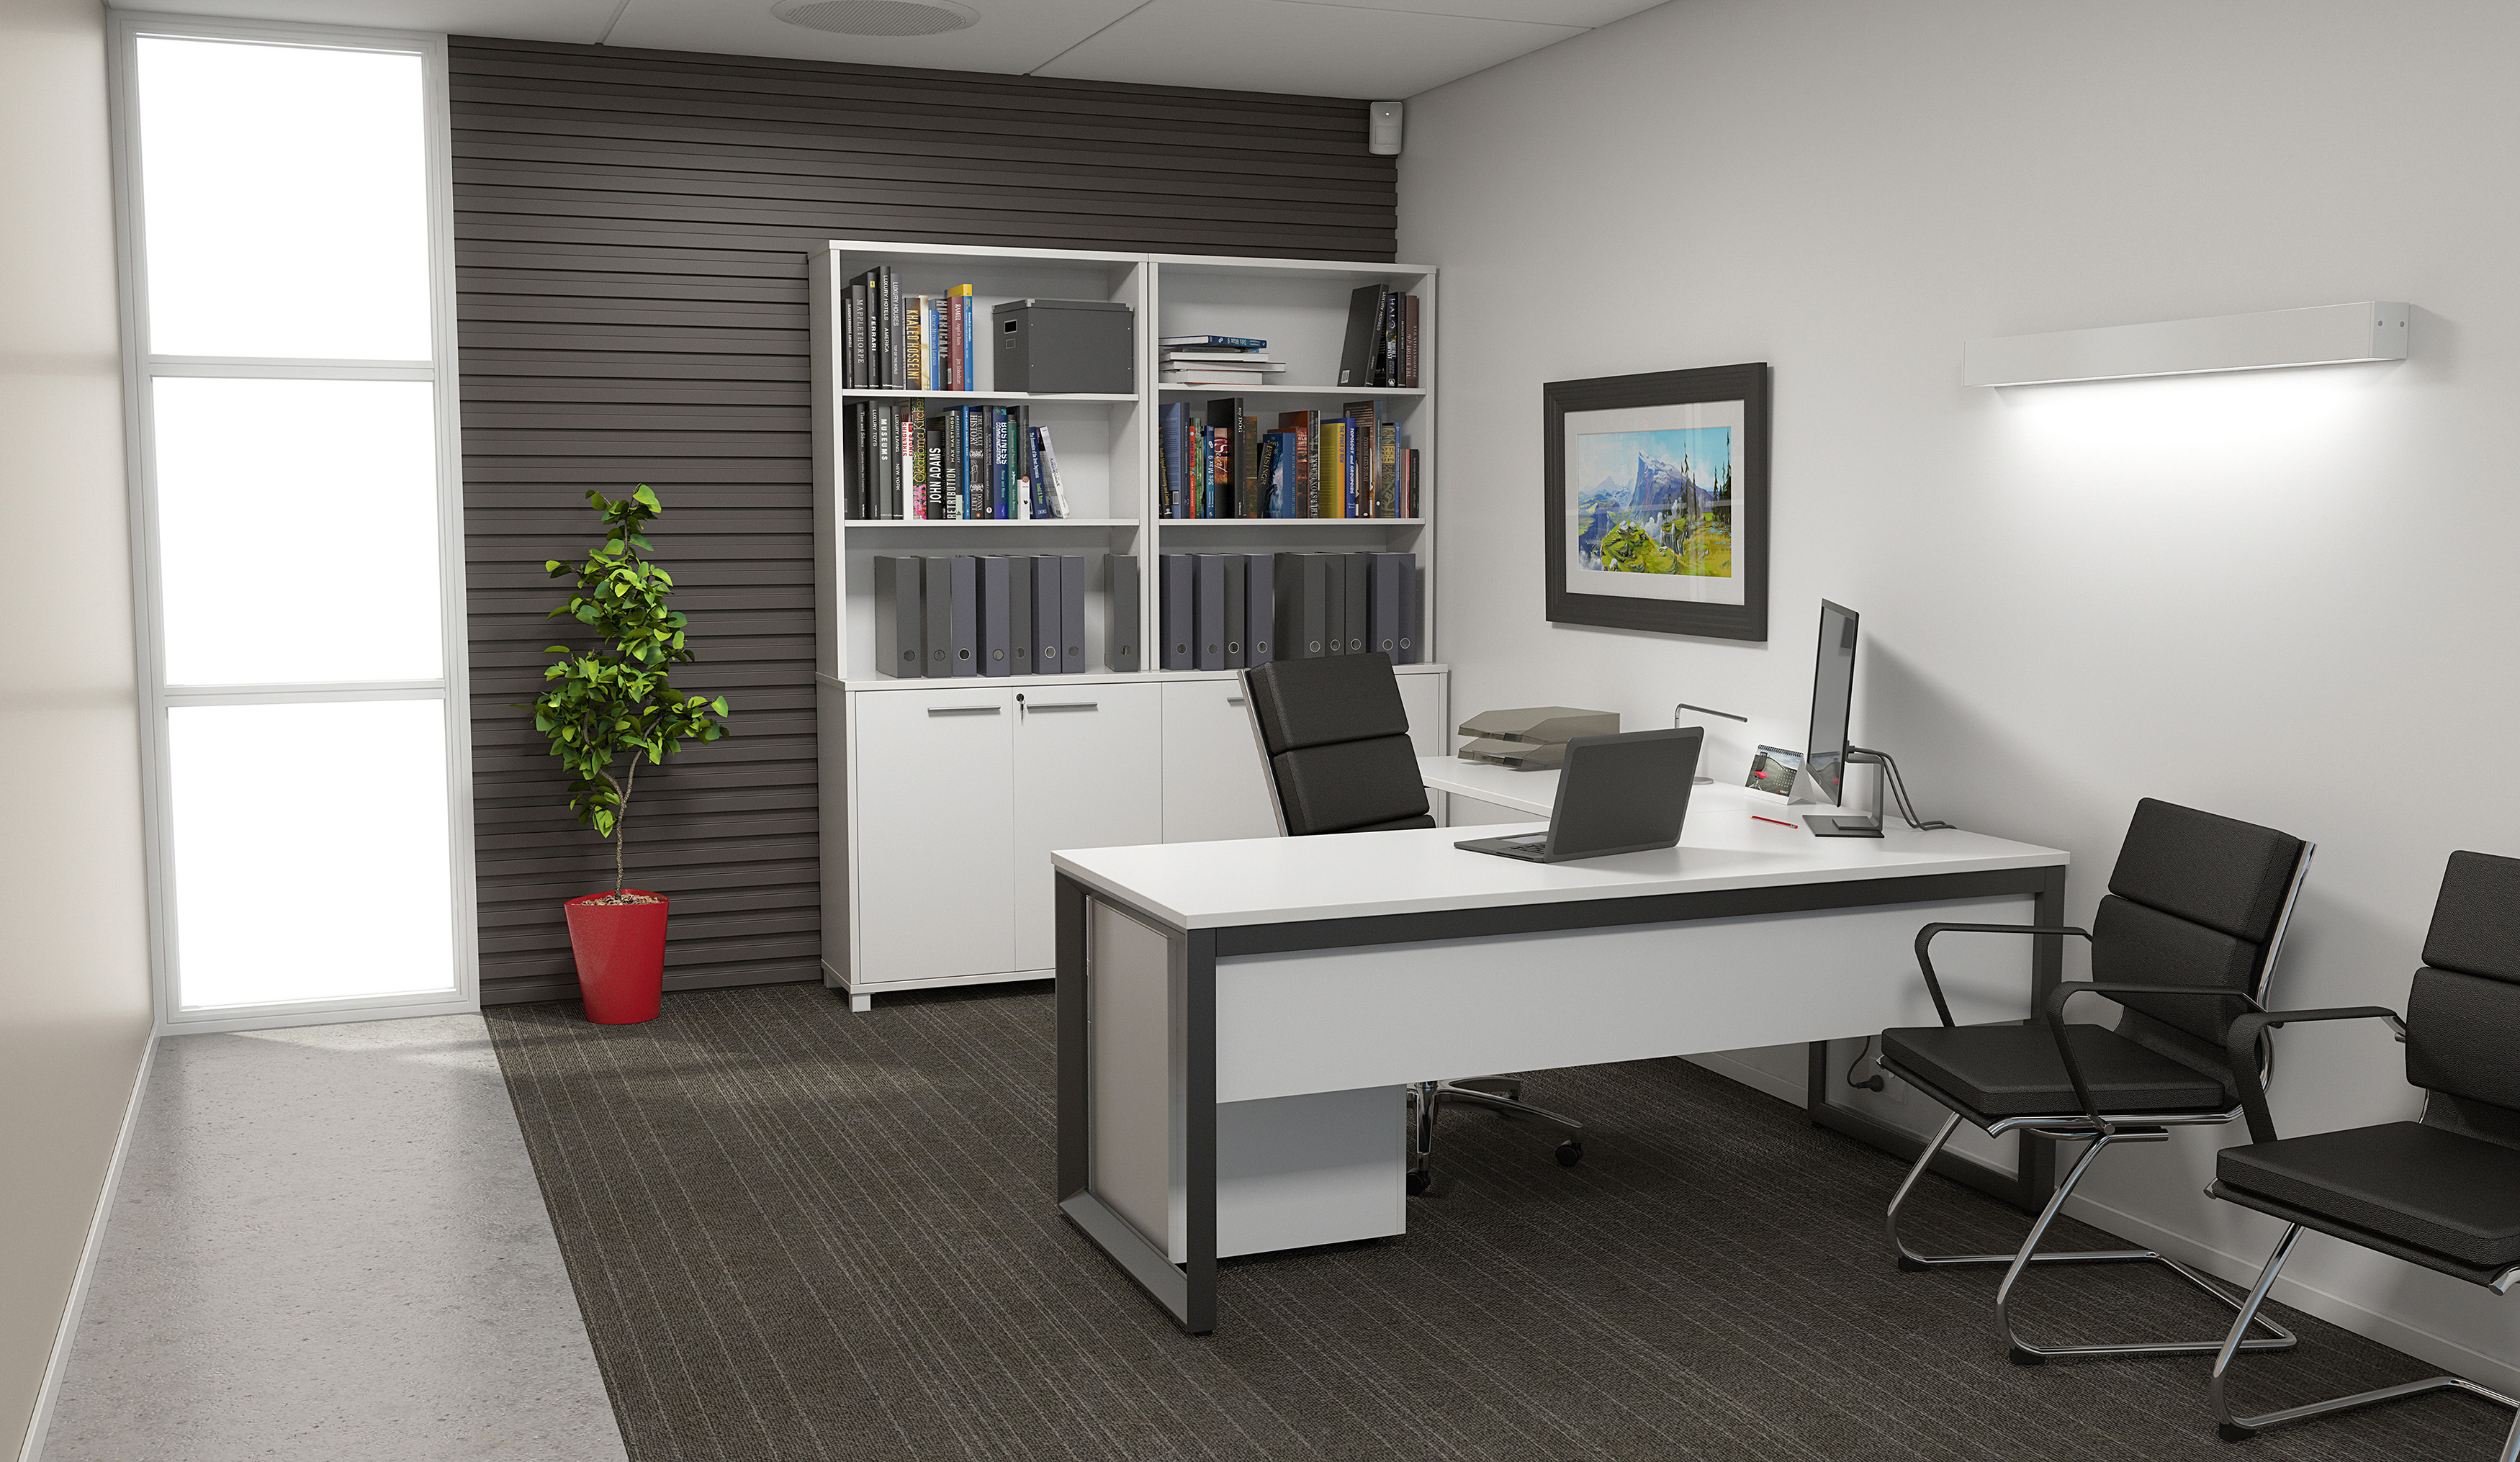 Private Office Space With An L Desk, A Bookshelve Unit And Visitor Seating